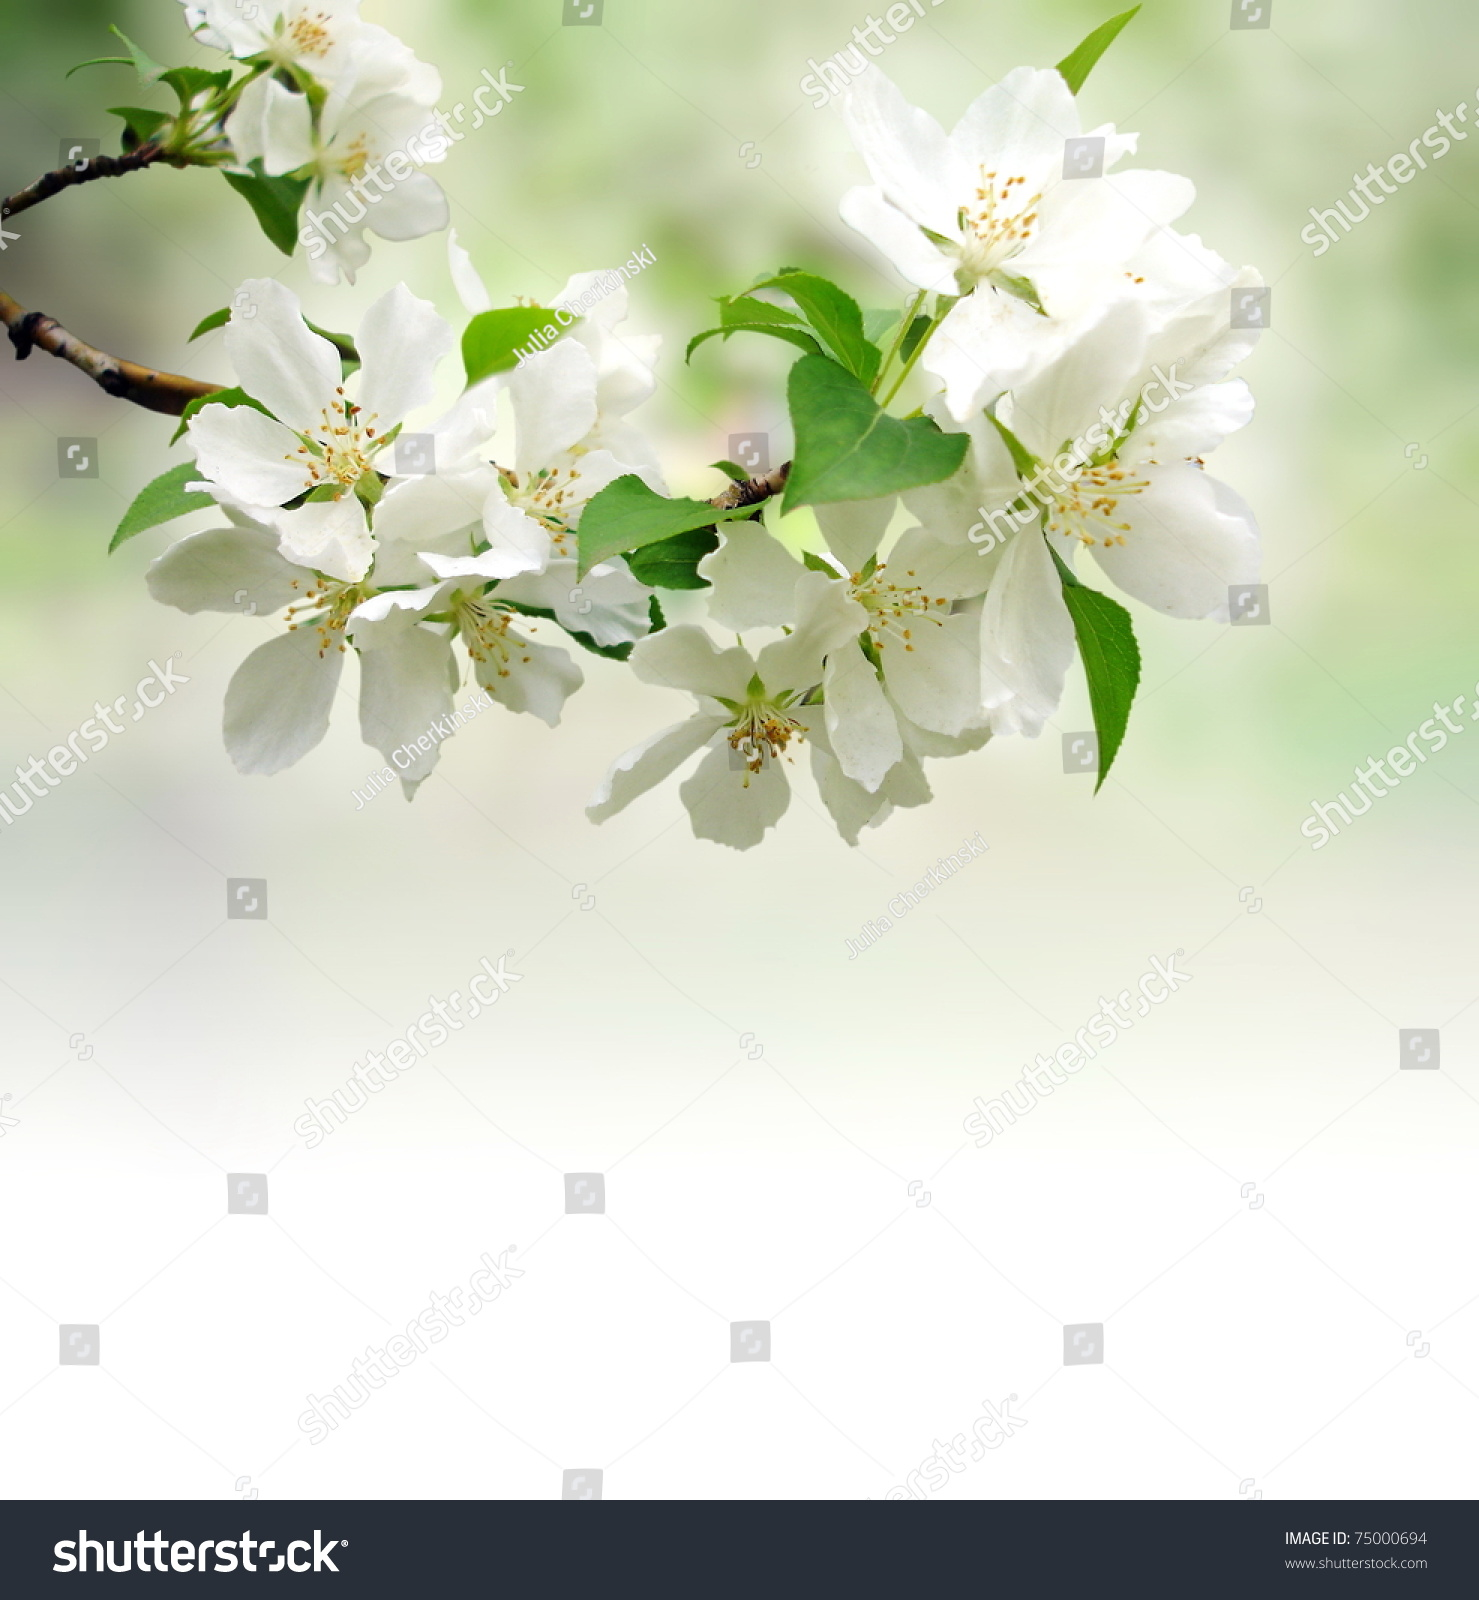 Bokeh Flowers Wedding: Photo Of Blossoming Tree Brunch With White Flowers On